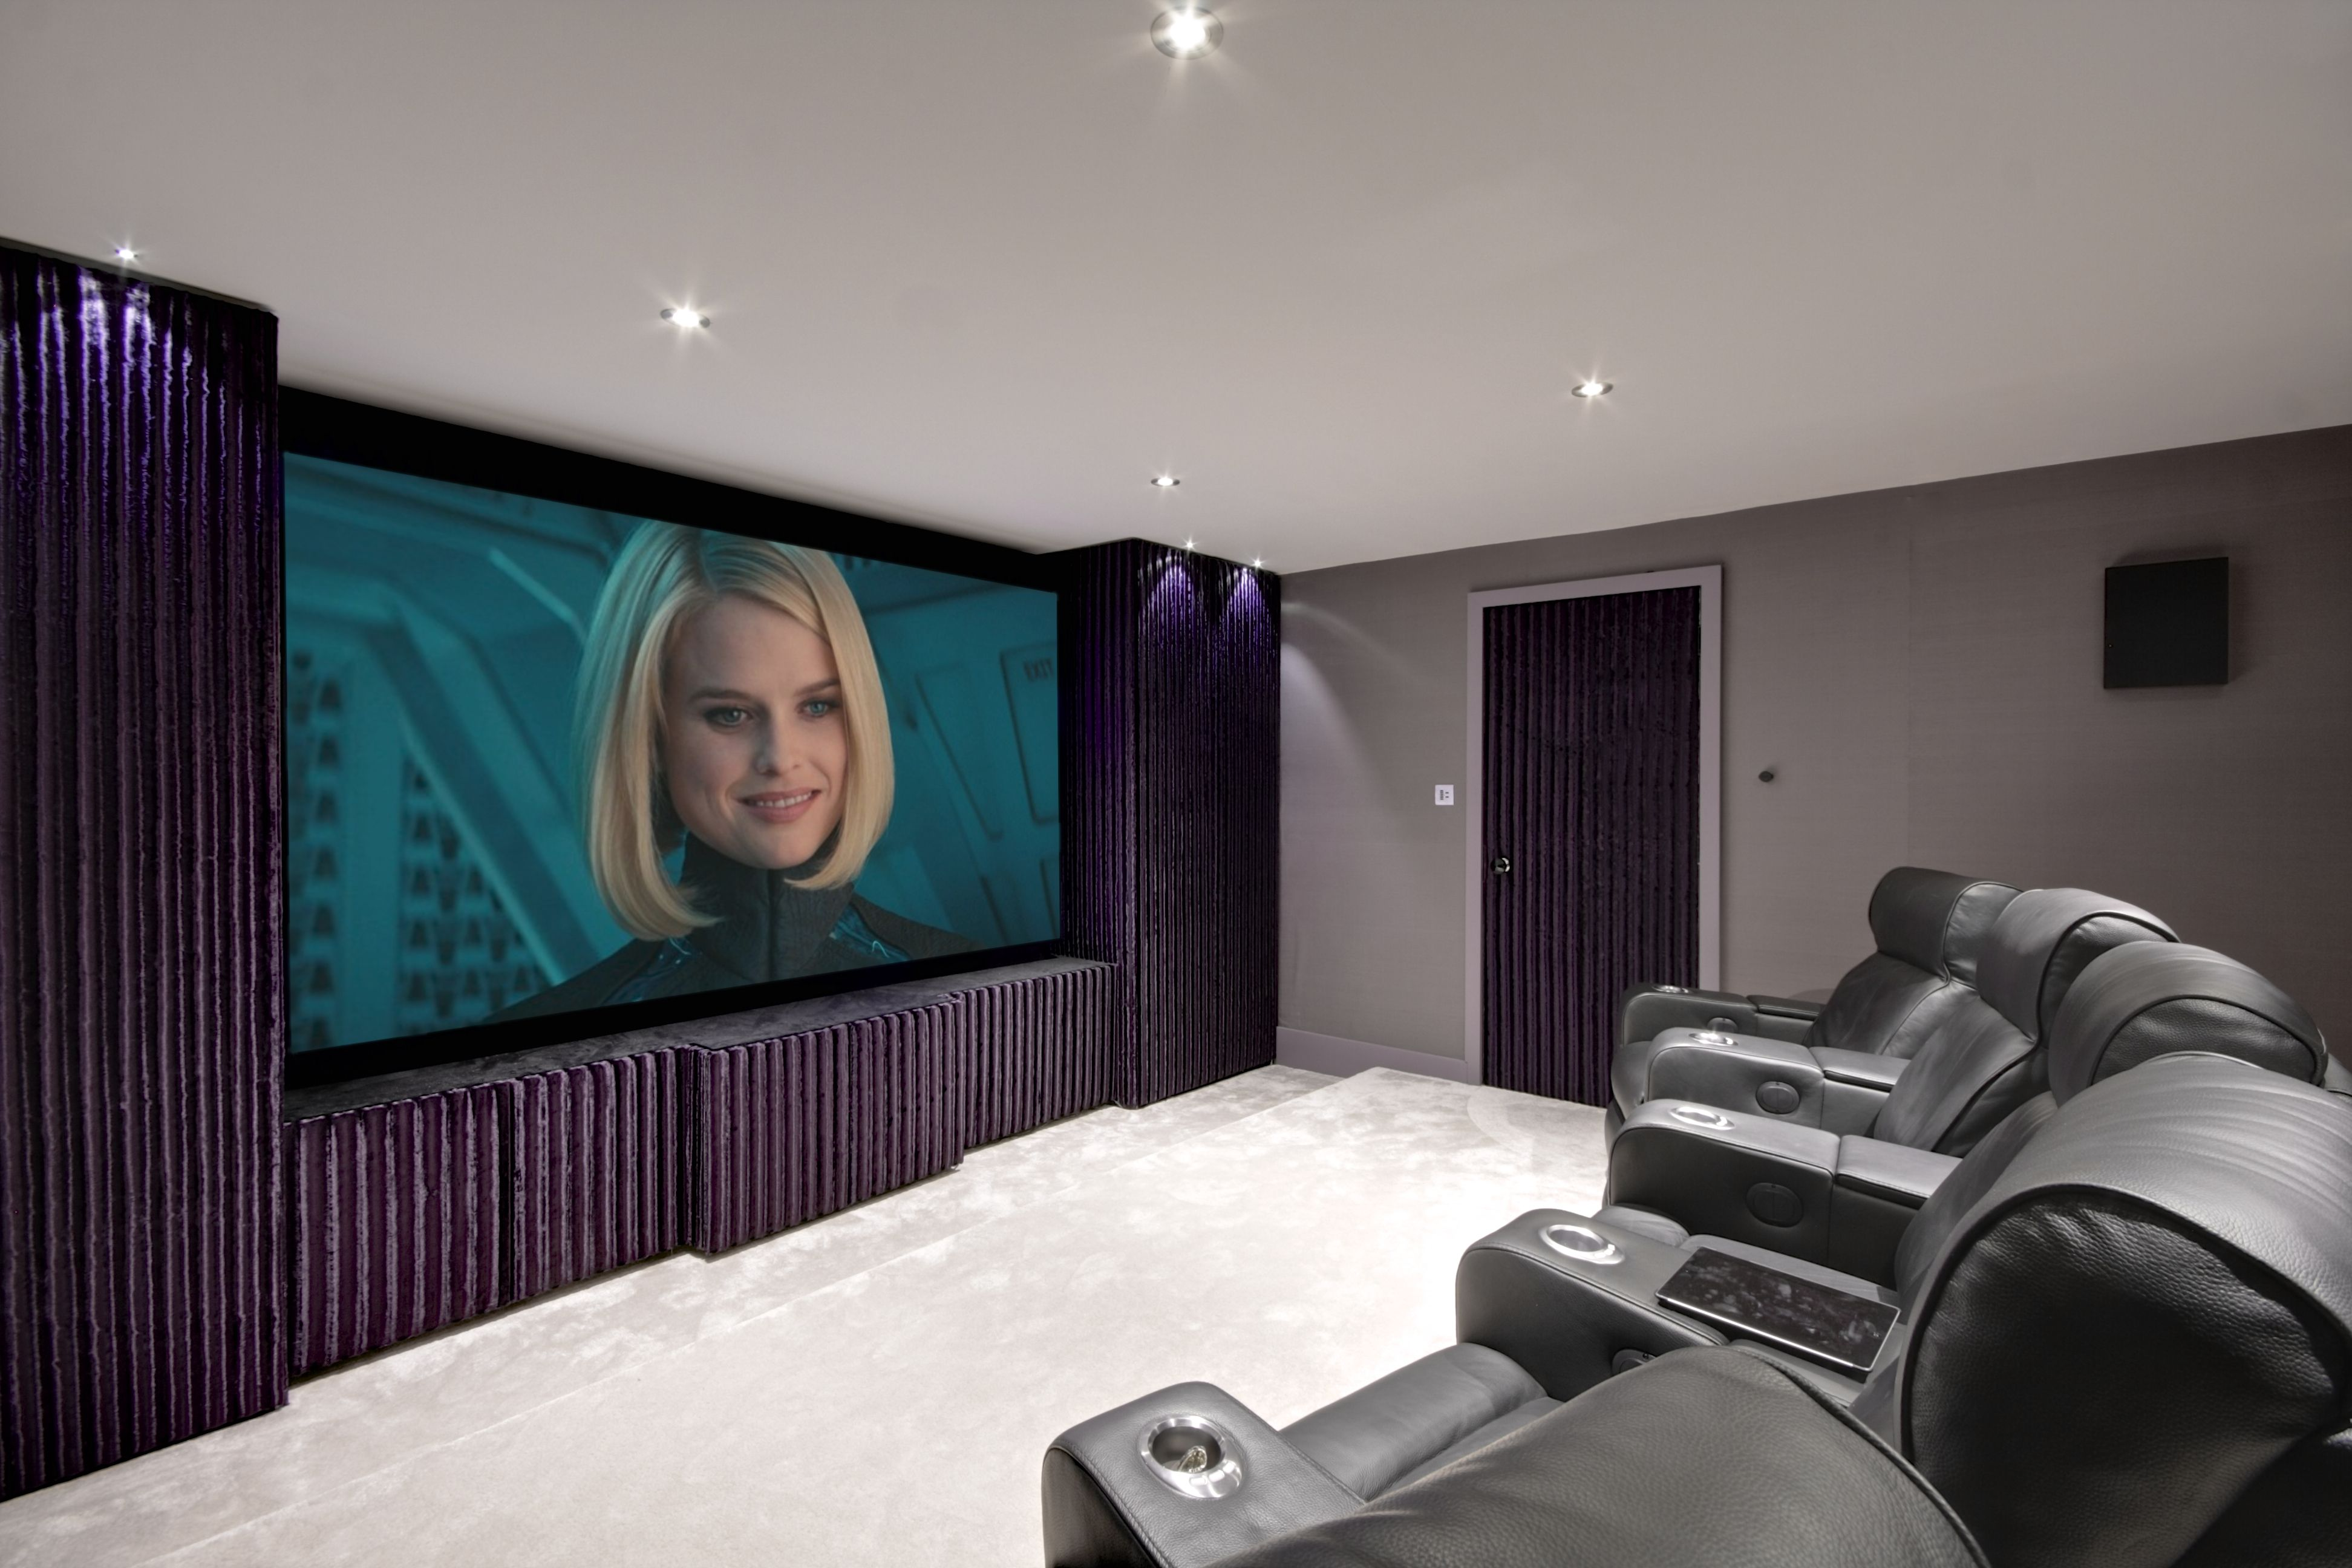 medium resolution of home cinema garage conversion home theater design home theater setup home theater seating